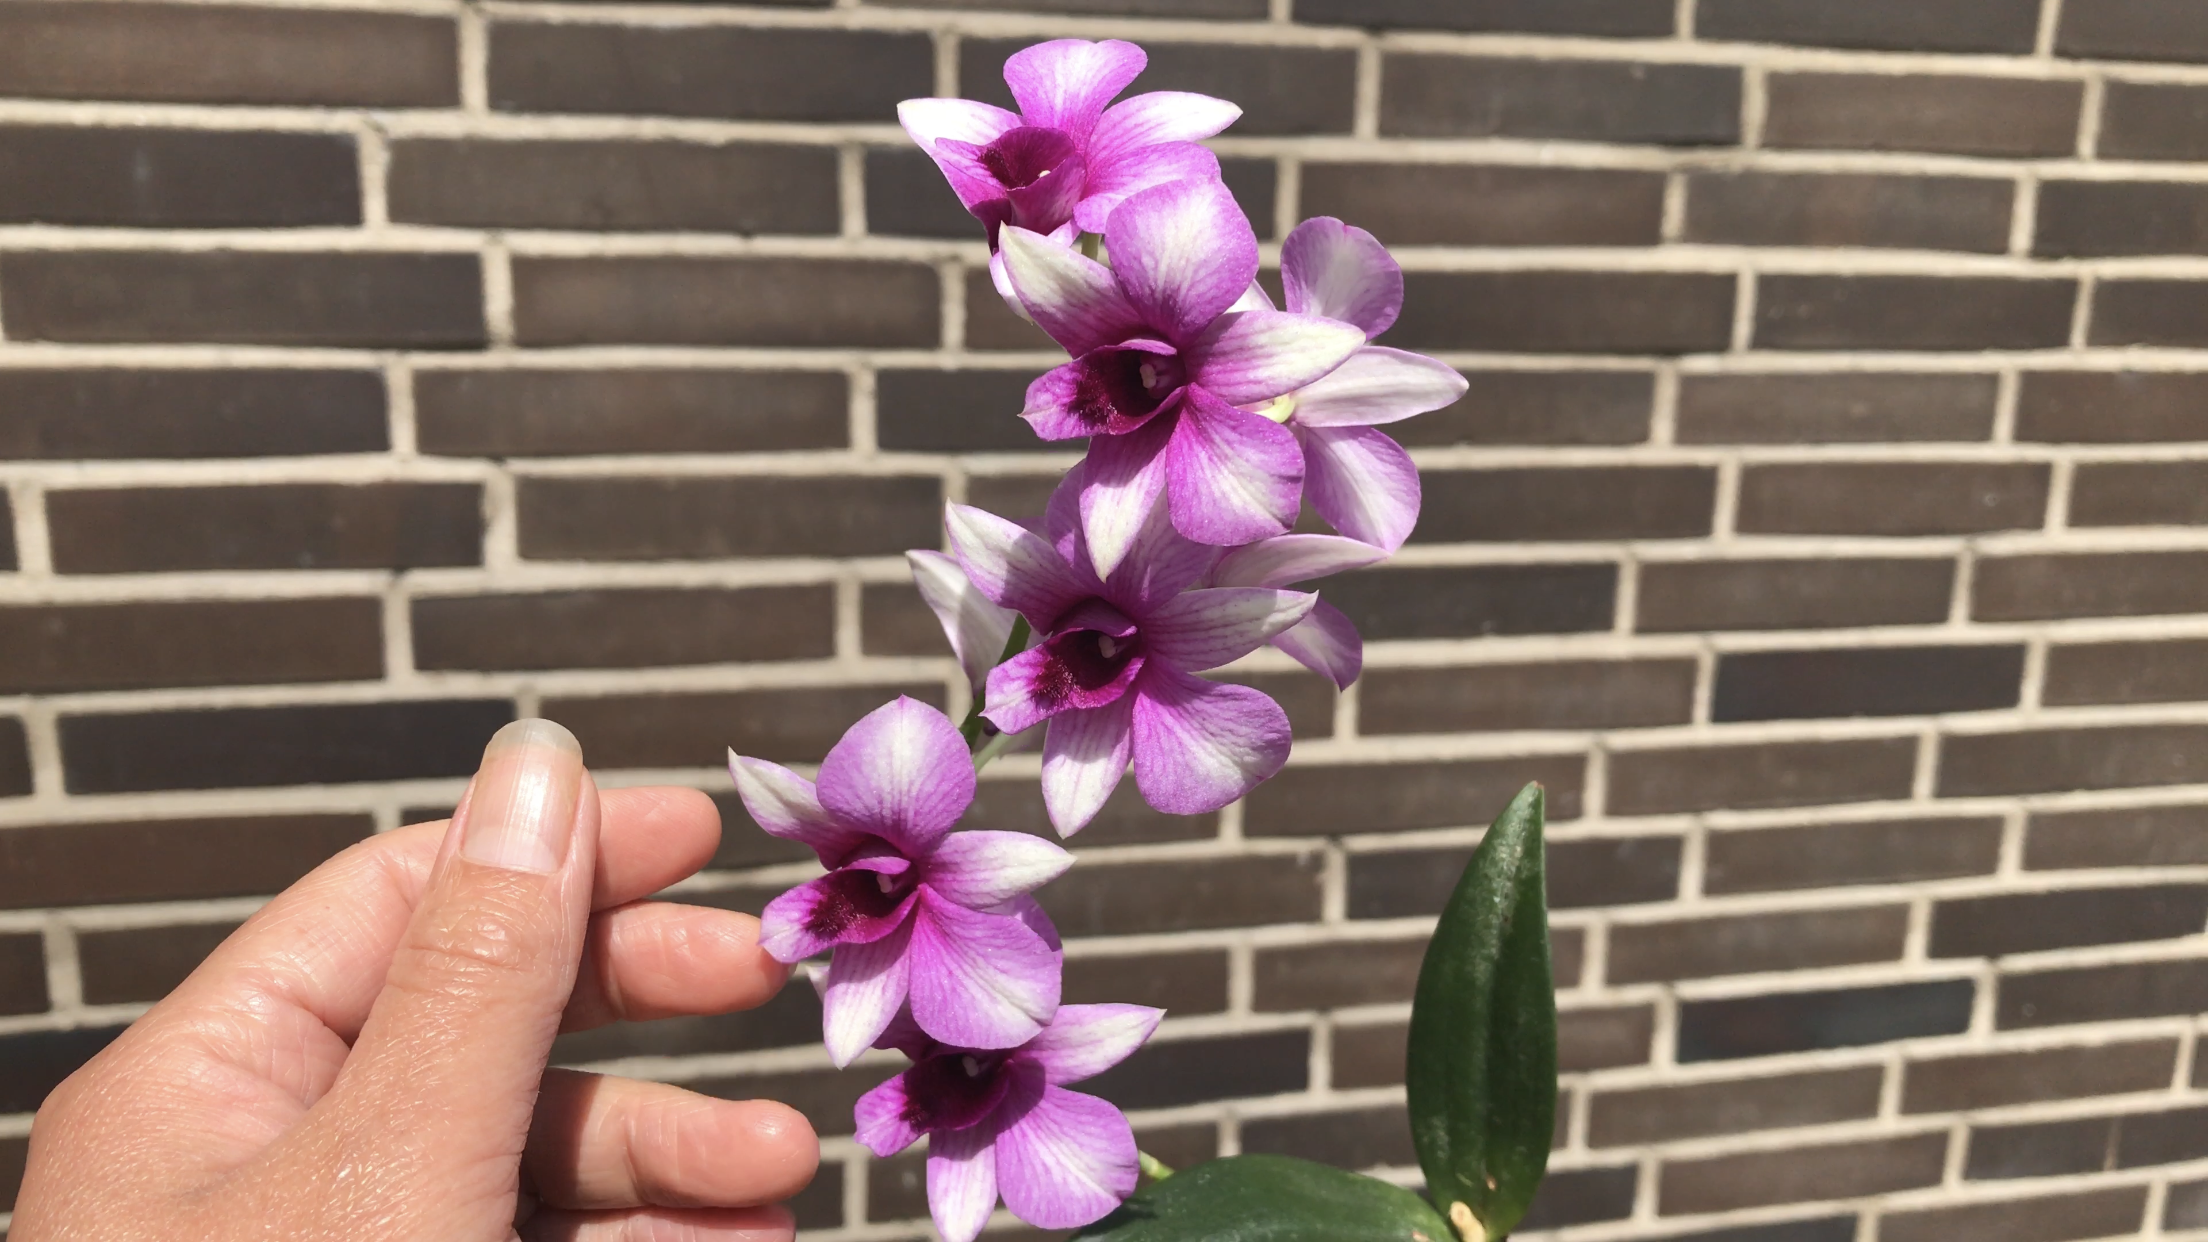 How to grow Orchids, how to care for orchids, Don't when growing orchids, How to reboom orchids, How to grow Orchids In water, How to grow Orchids from Cuttings, Indoor Orchid care, Growing Orchids, Orchid care Instructions, Orchid Care For beginners, Orchid Air roots, where to cut orchid stem after bloom, Orchid care 10 easy tips,how to keep your orchids, How to make orchids bloom, easy care orchids, how to plant orchids, How to Grow Orchids Indoors, Home orchid growing, Tips for growing orchids, Look after orchid